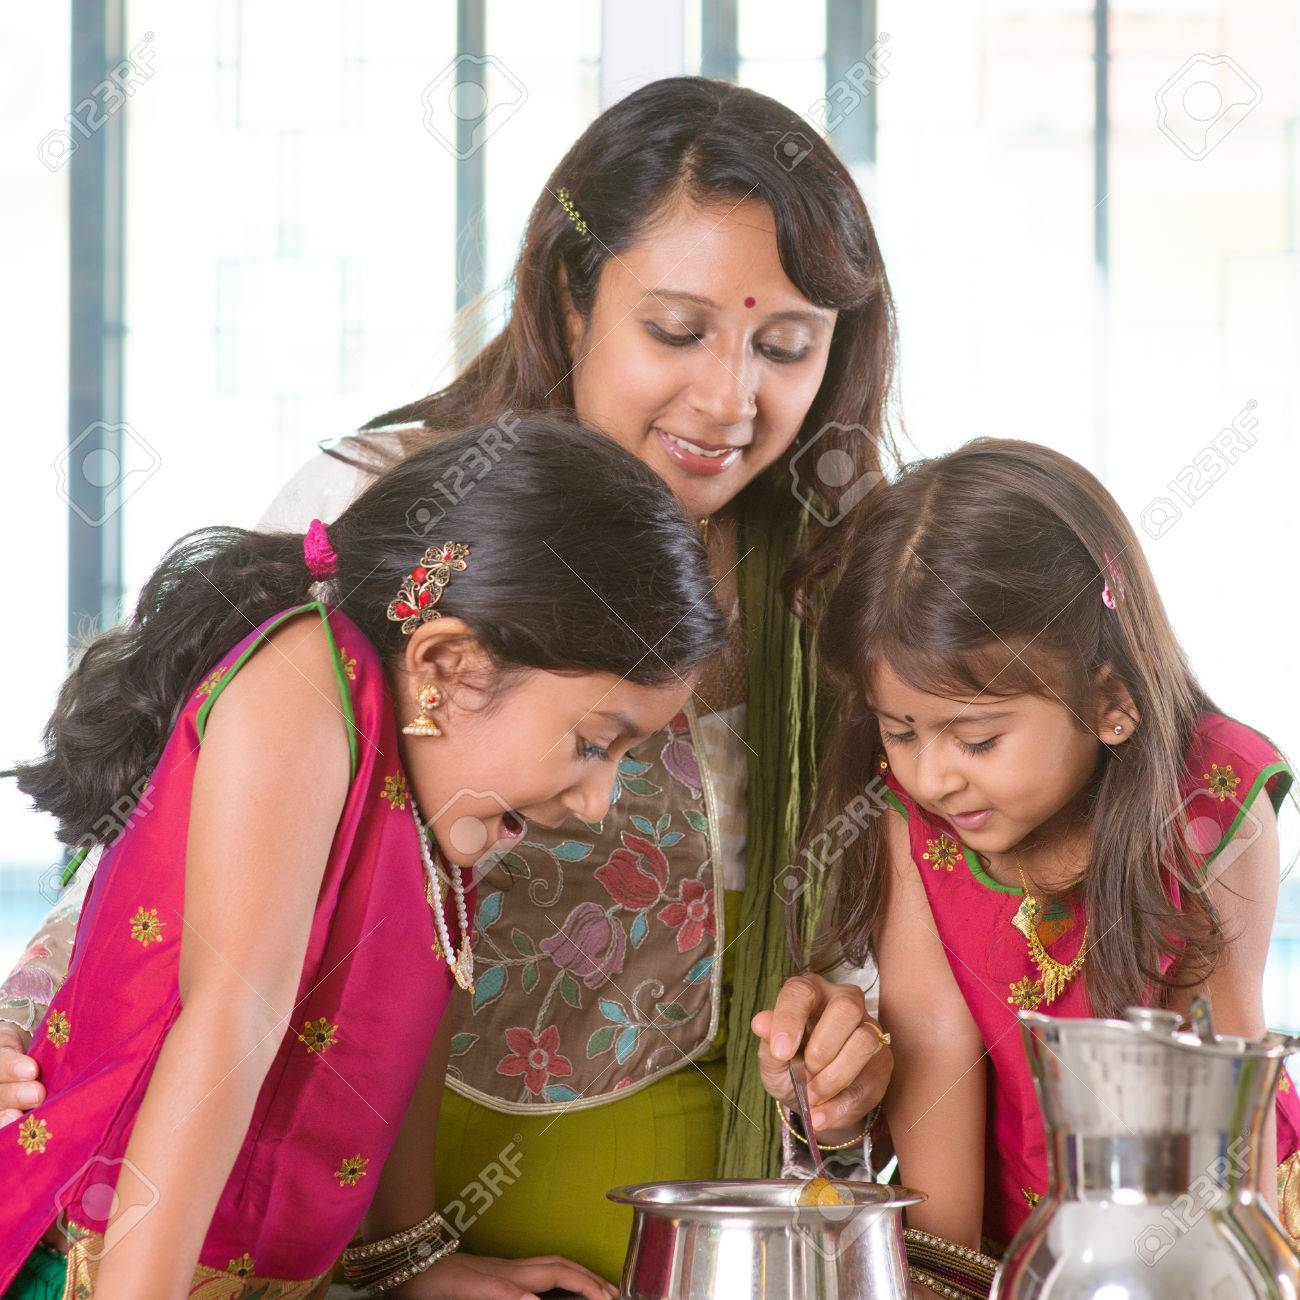 Family cooking kitchen - Asian Family Cooking Food Together In Kitchen Indian Mother And Children Preparing Meal At Home